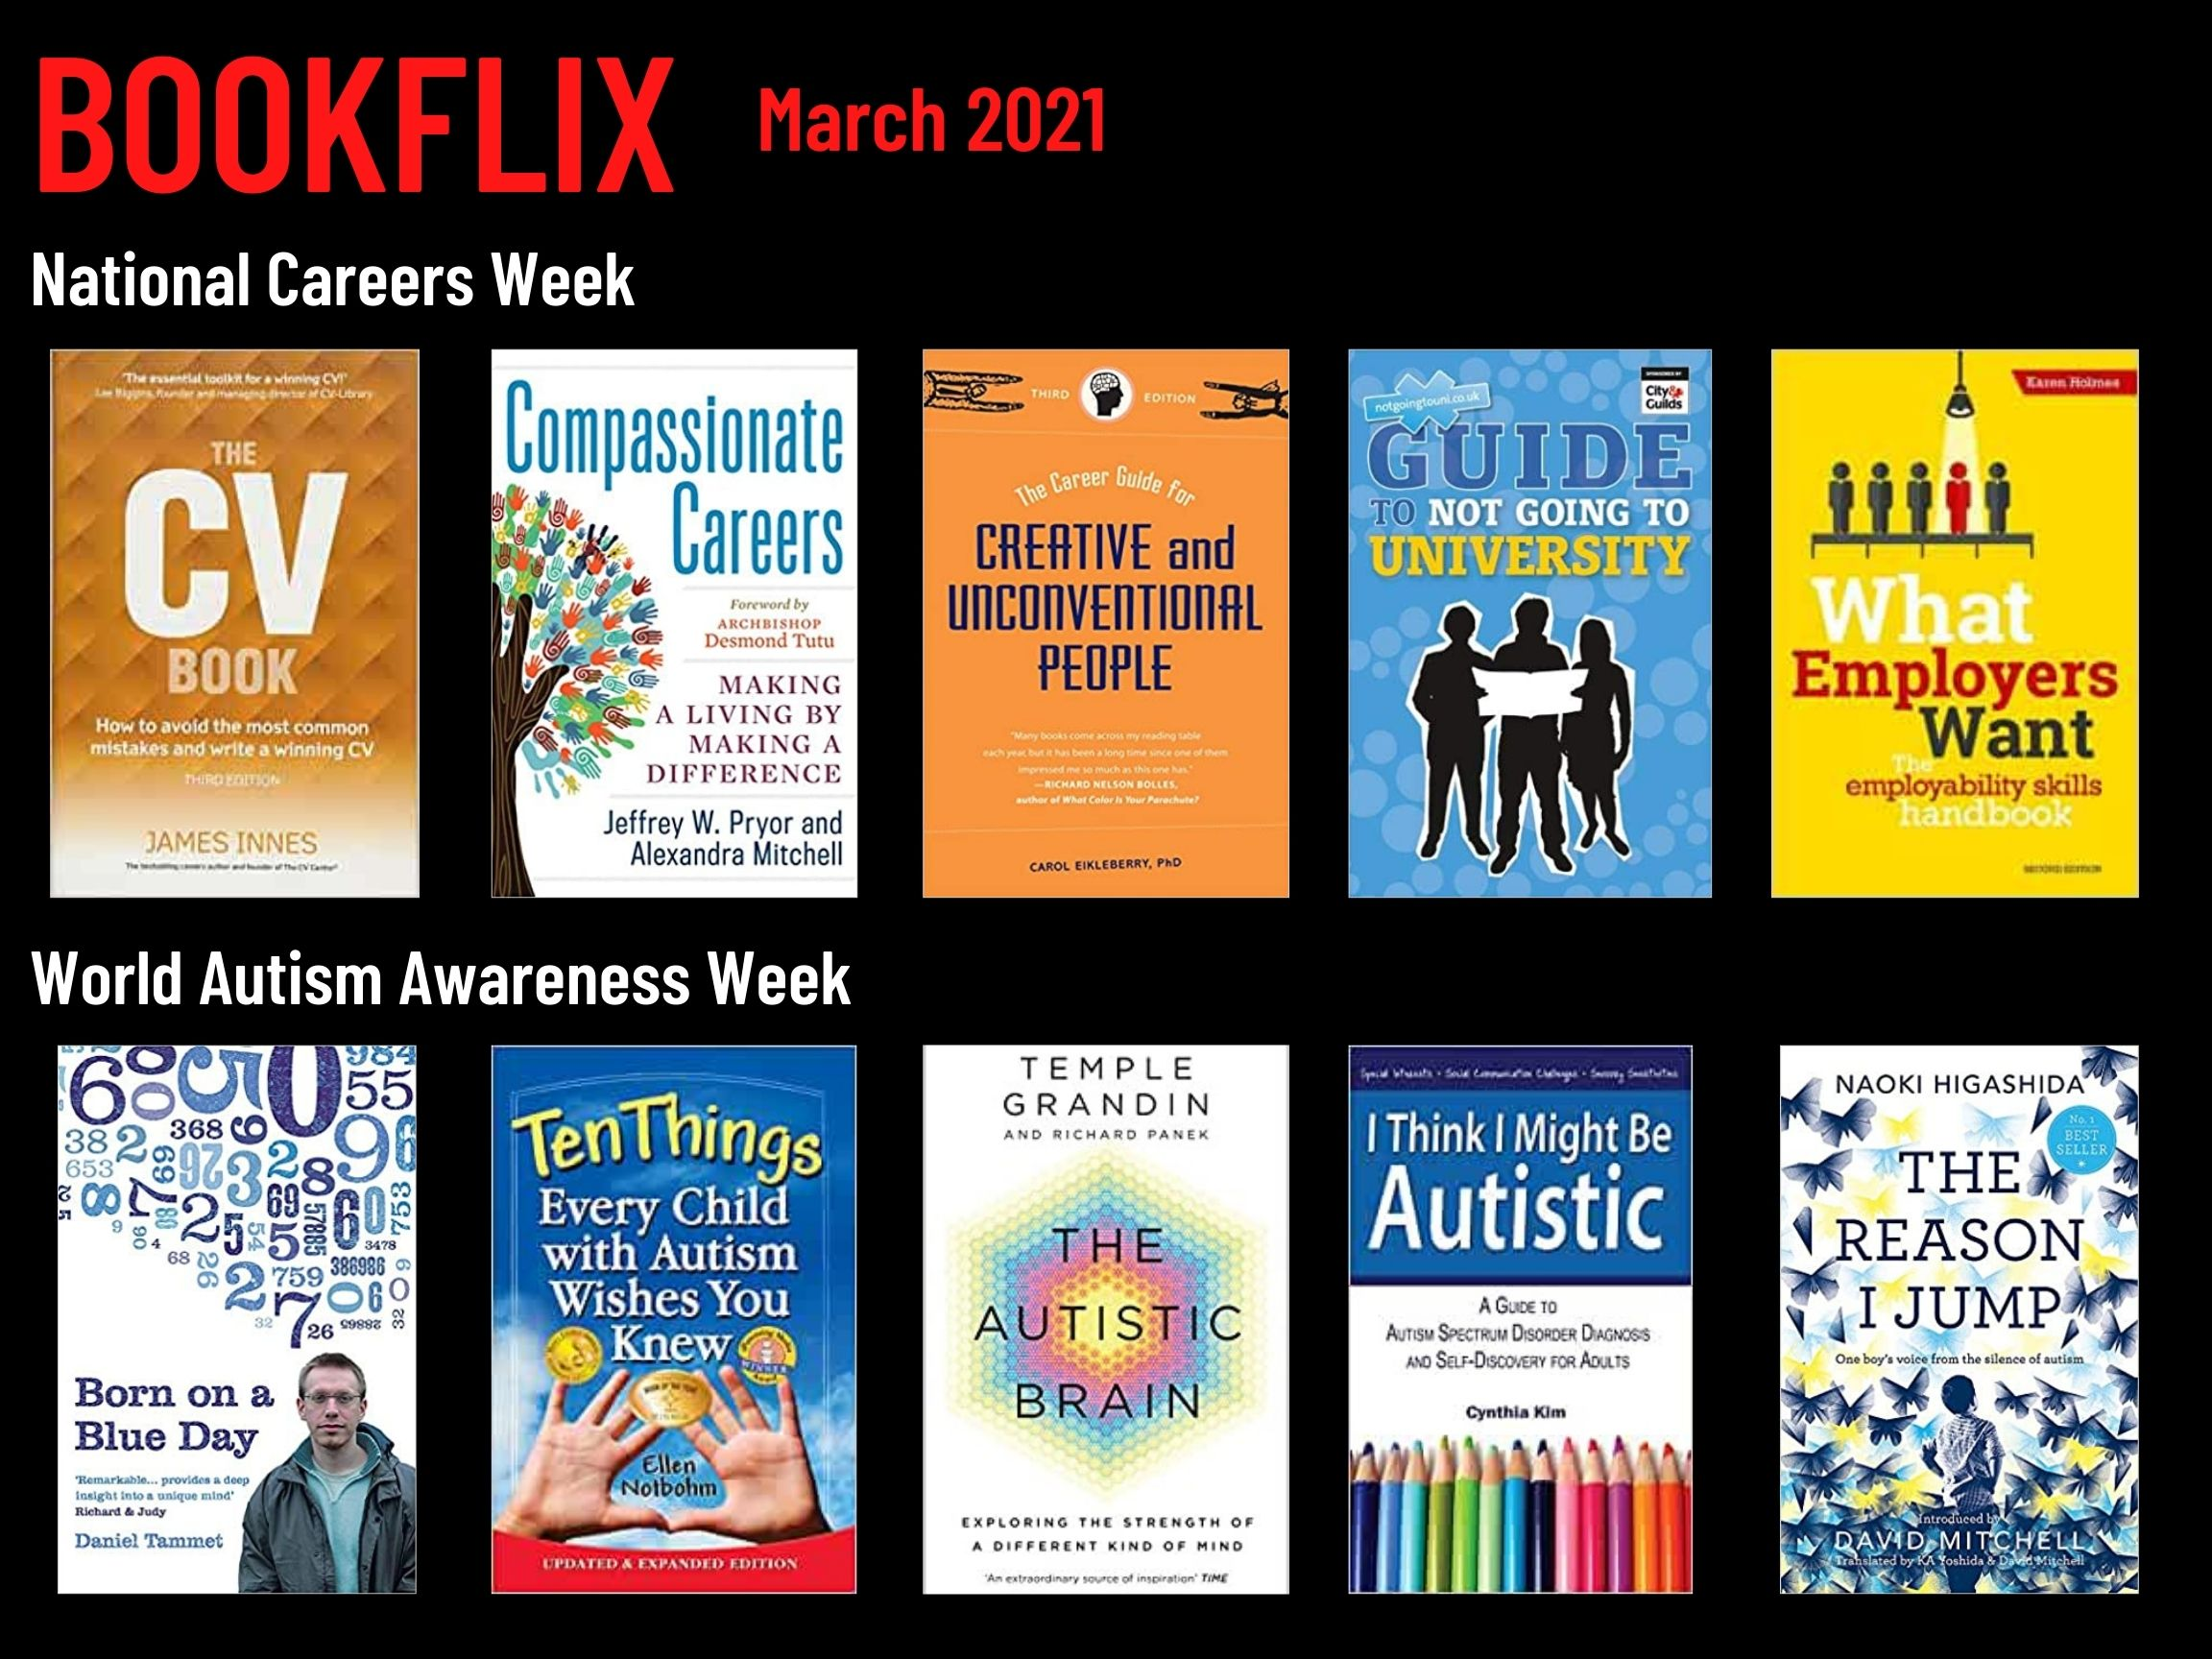 Bookflix page two. Text reads: Bookflix - March 2021. The page has 10 images of book/dvd covers. These are all listed in order in the body text below the images.